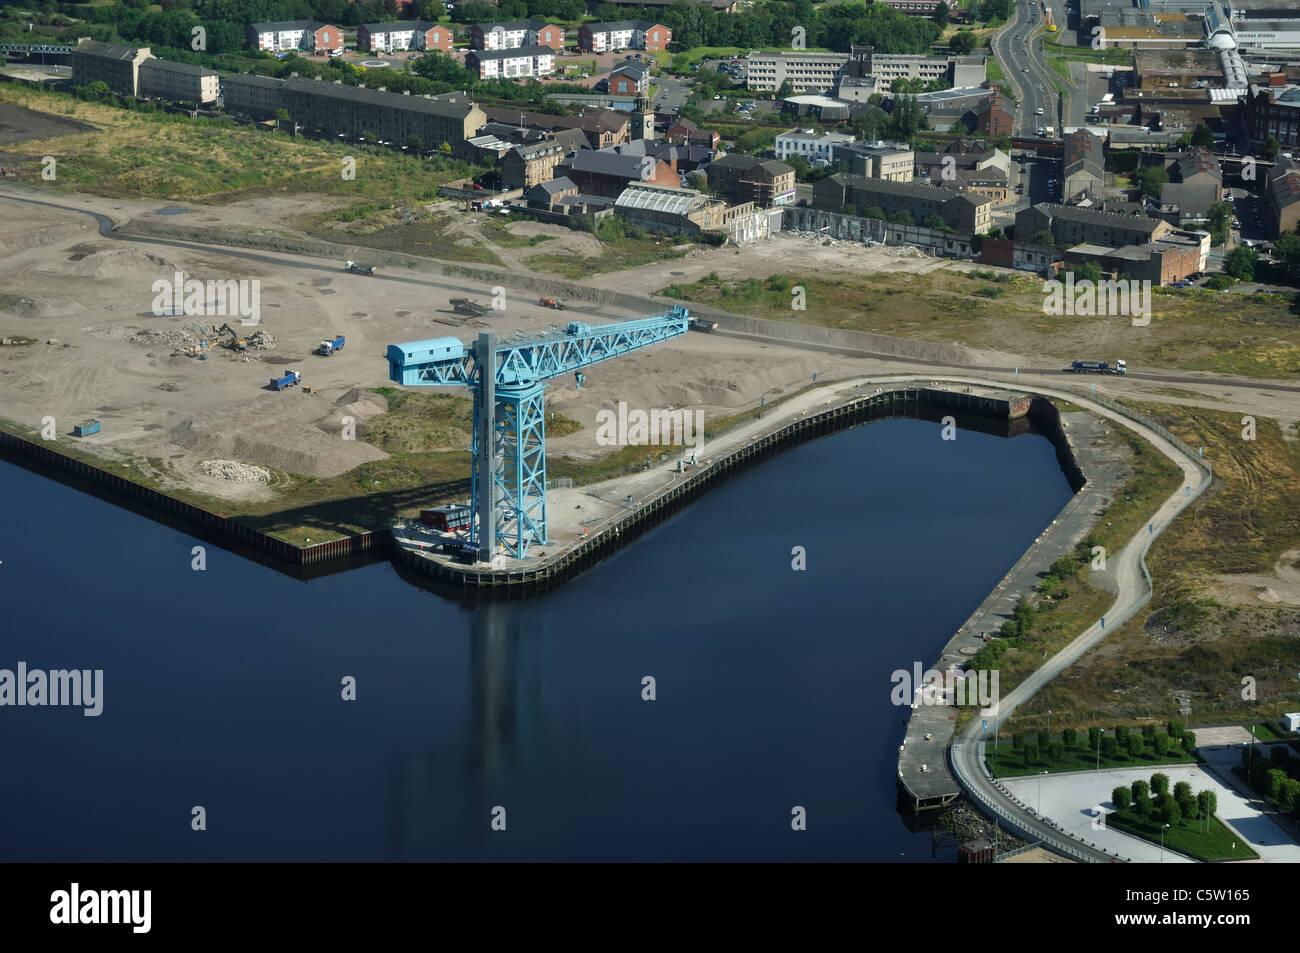 Titan Clydebank is a 150-foot-high cantilever crane at Clydebank, West Dunbartonshire, Scotland which was heavily - Stock Image